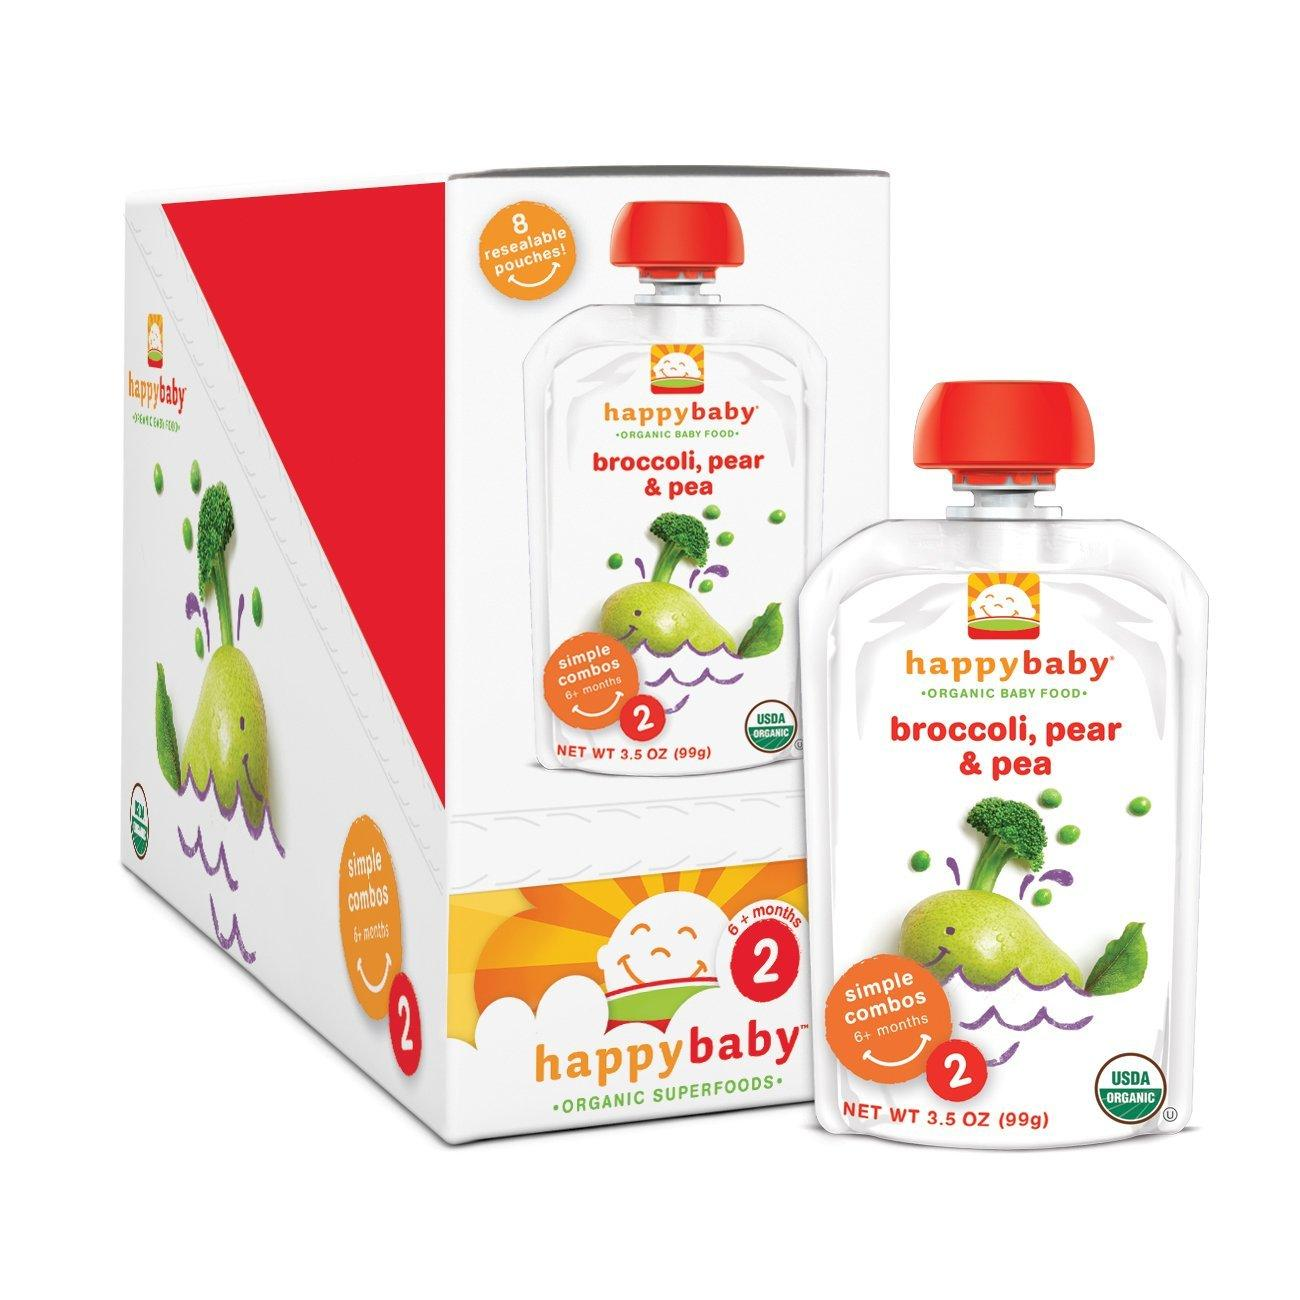 20% Off + Extra 5% Off + Free Shipping Happy Baby Organic Baby Food @ Amazon